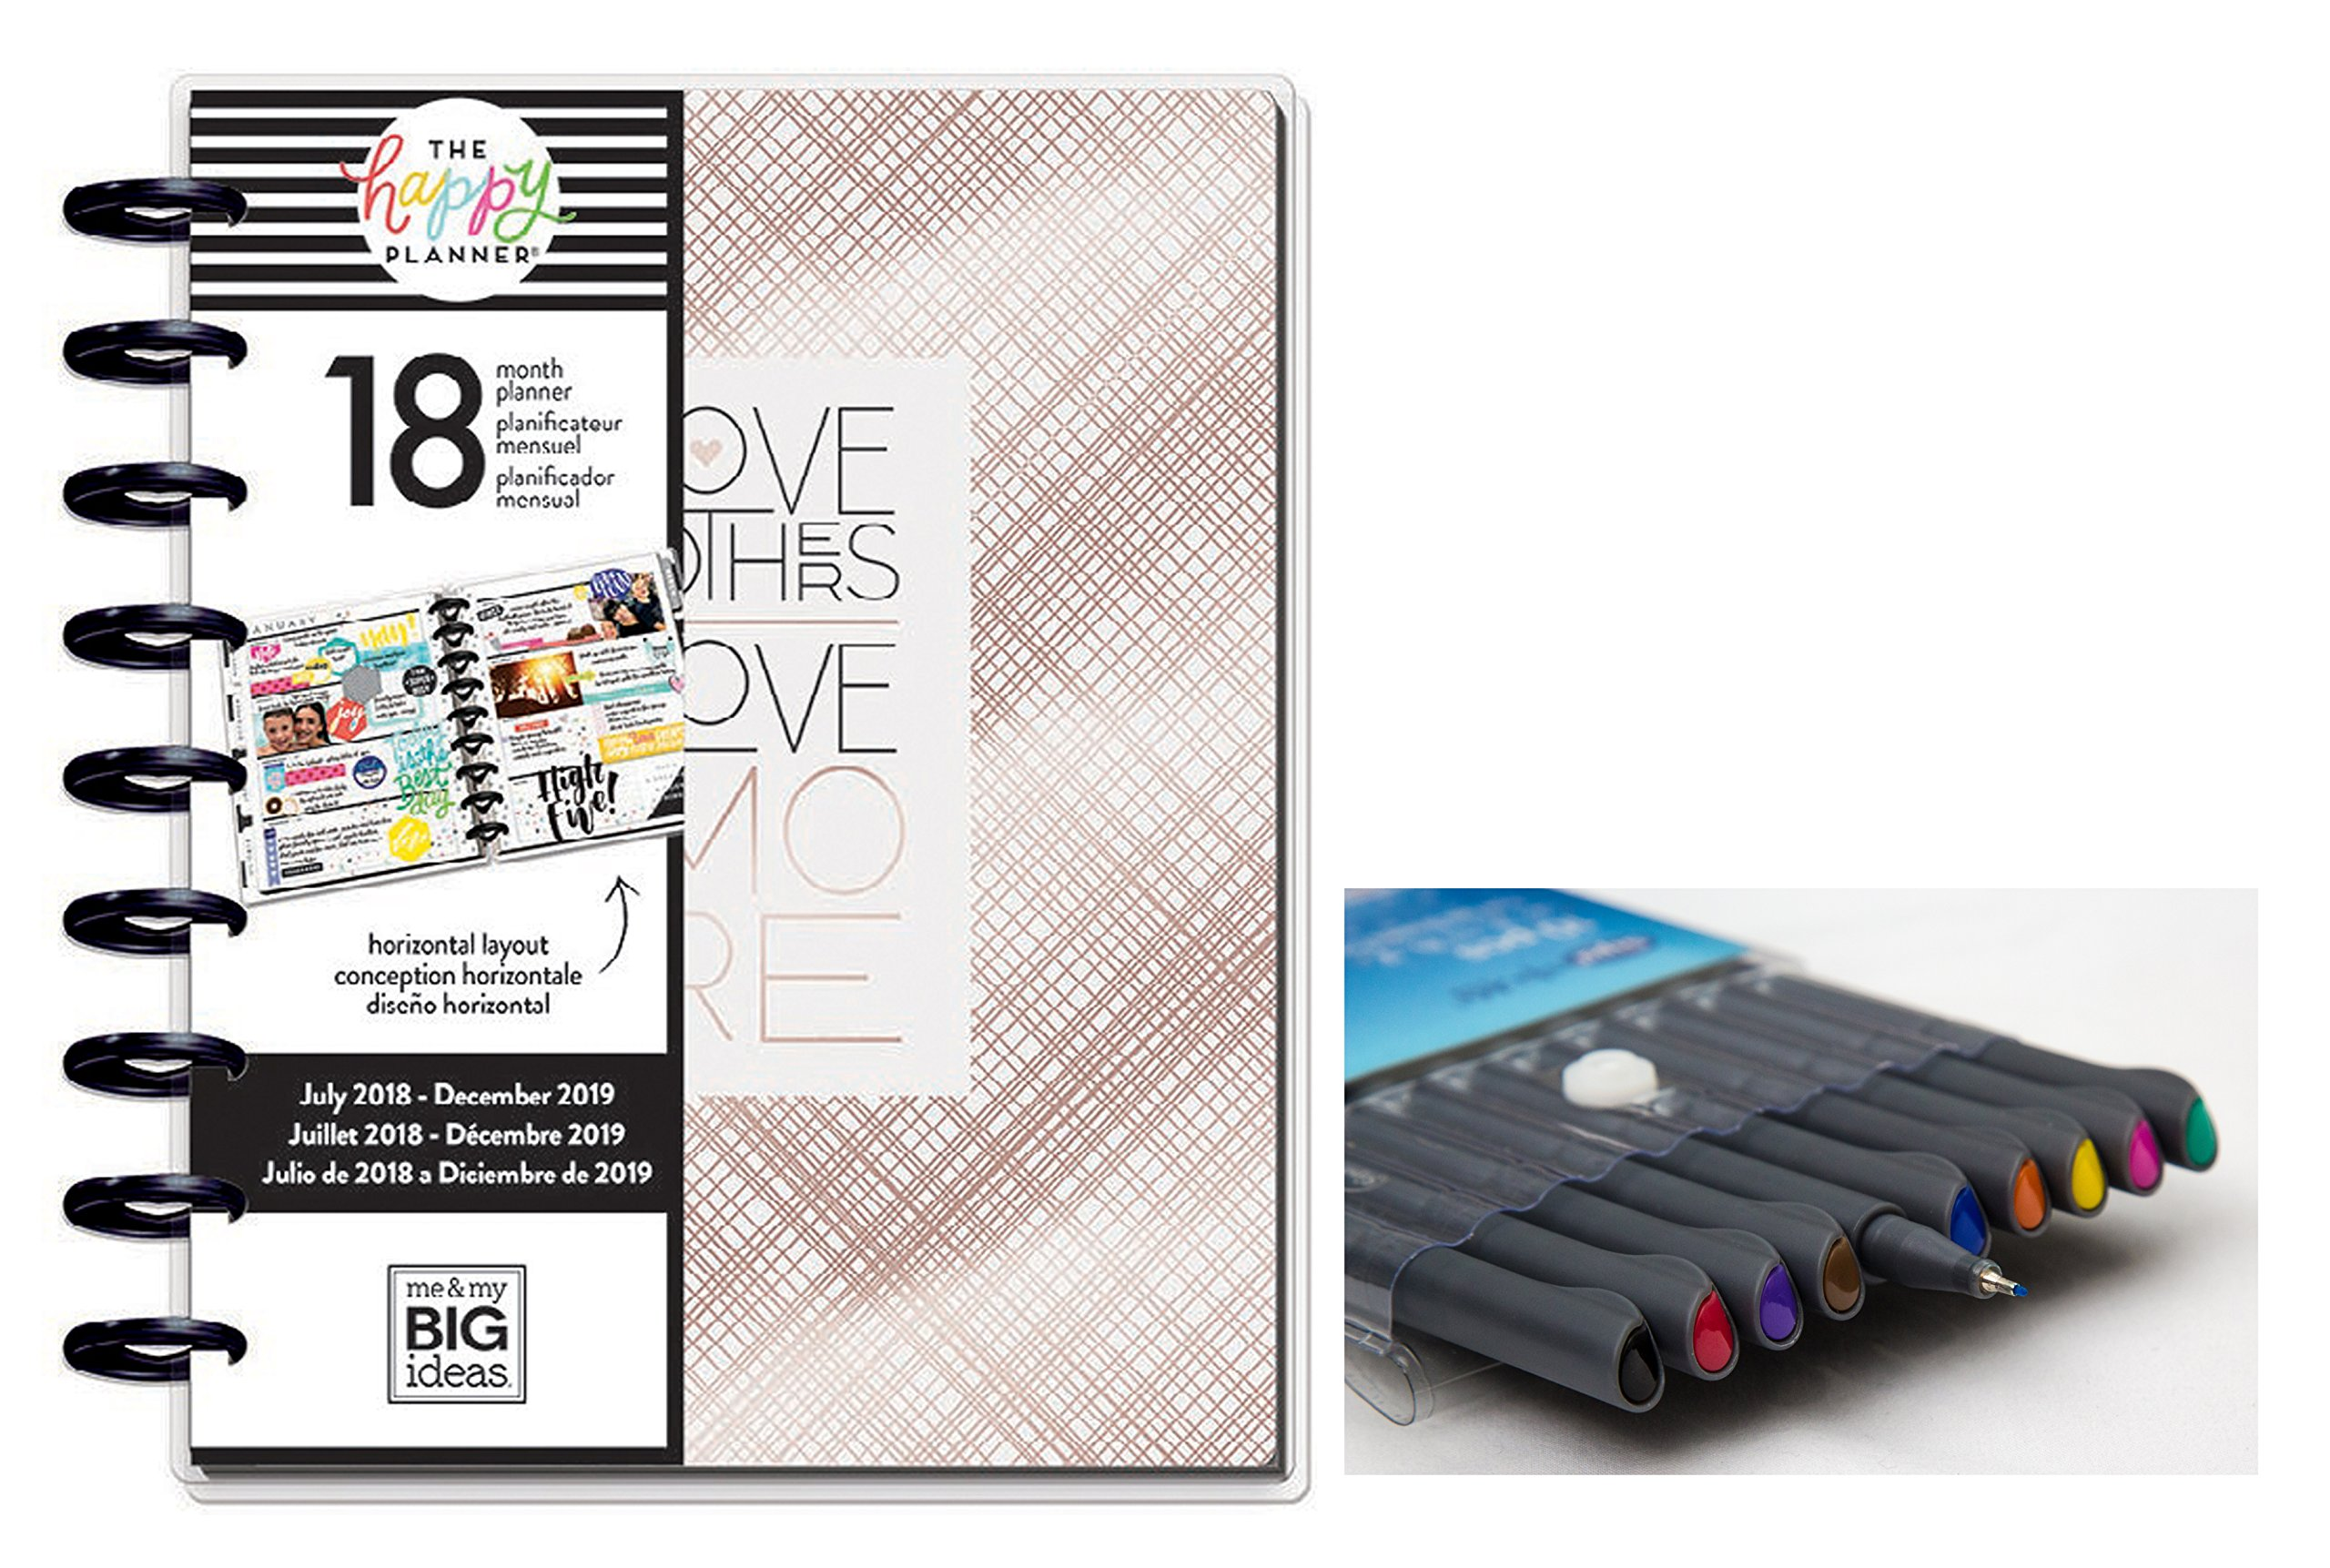 me & my BIG ideas the Happy Planner: Medium/Classic Modern Chic July 2018 - Dec 2019 and Comes with Kemah Craft 10 Pc Fineliner Color Pens (PLNR-75)